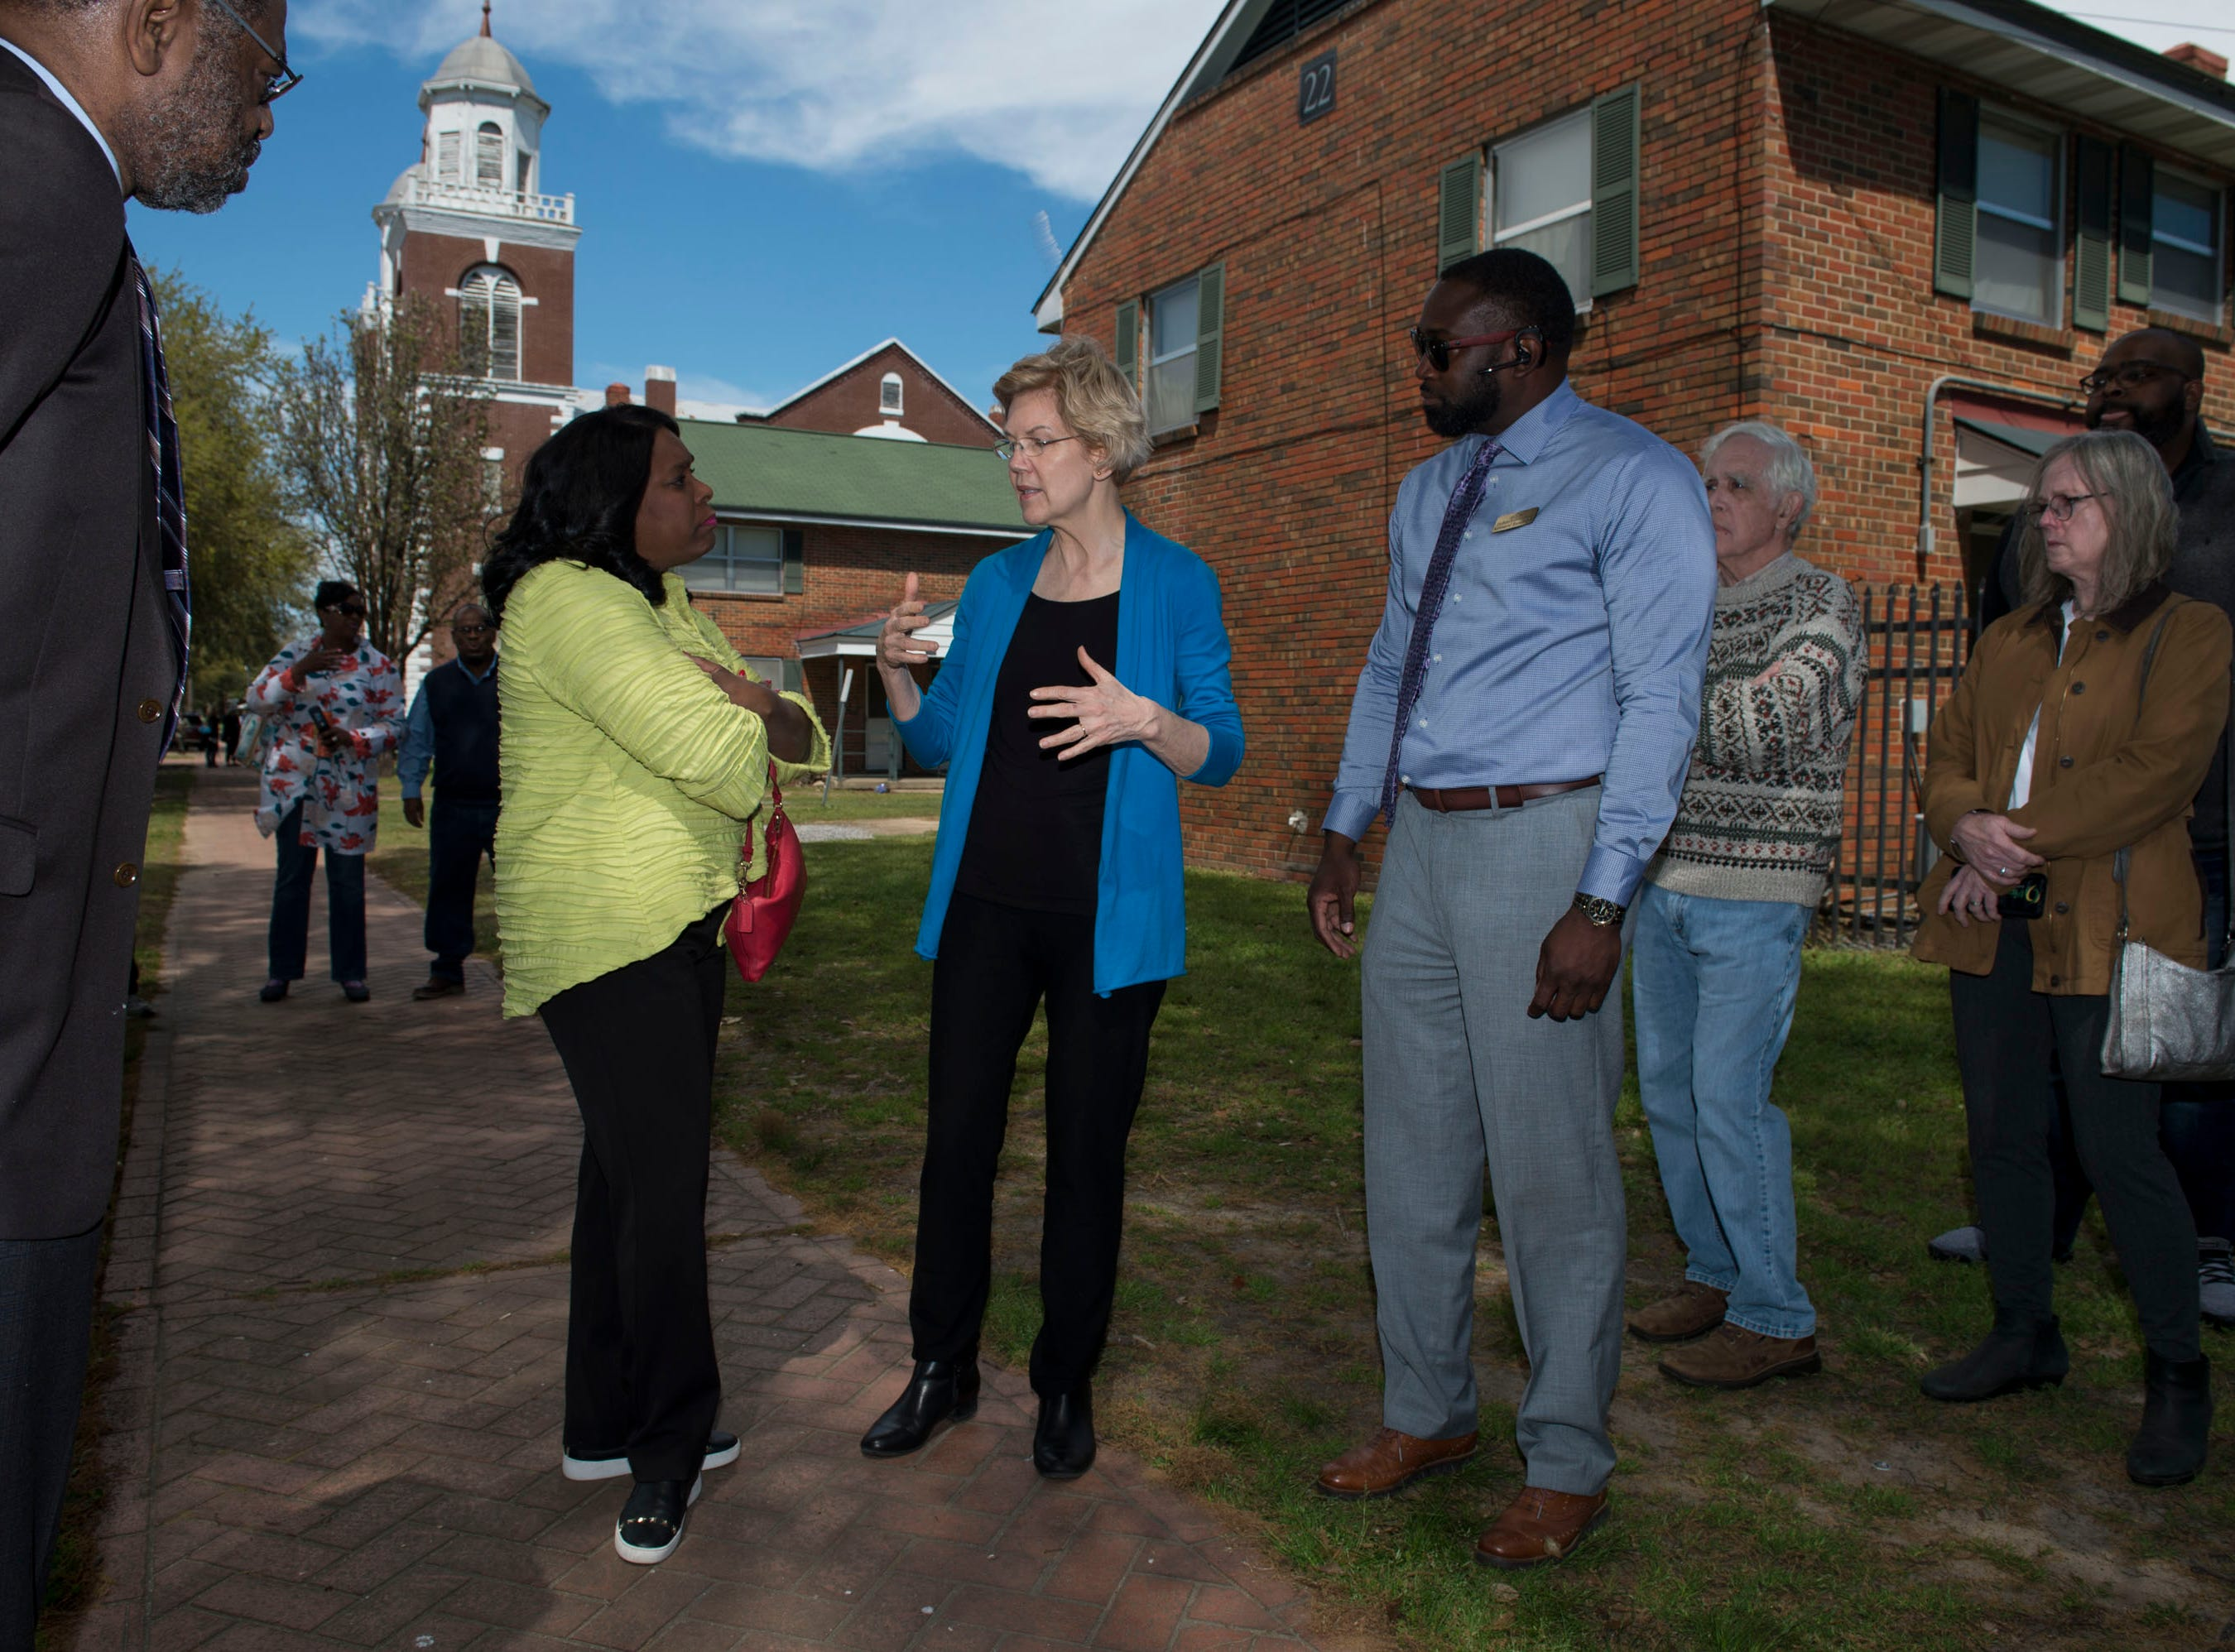 Rep. Terri Sewell, left, and Sen. Elizabeth Warren talk outside  Brown Chapel AME Church in Selma, Ala., on Tuesday, March 19, 2019.